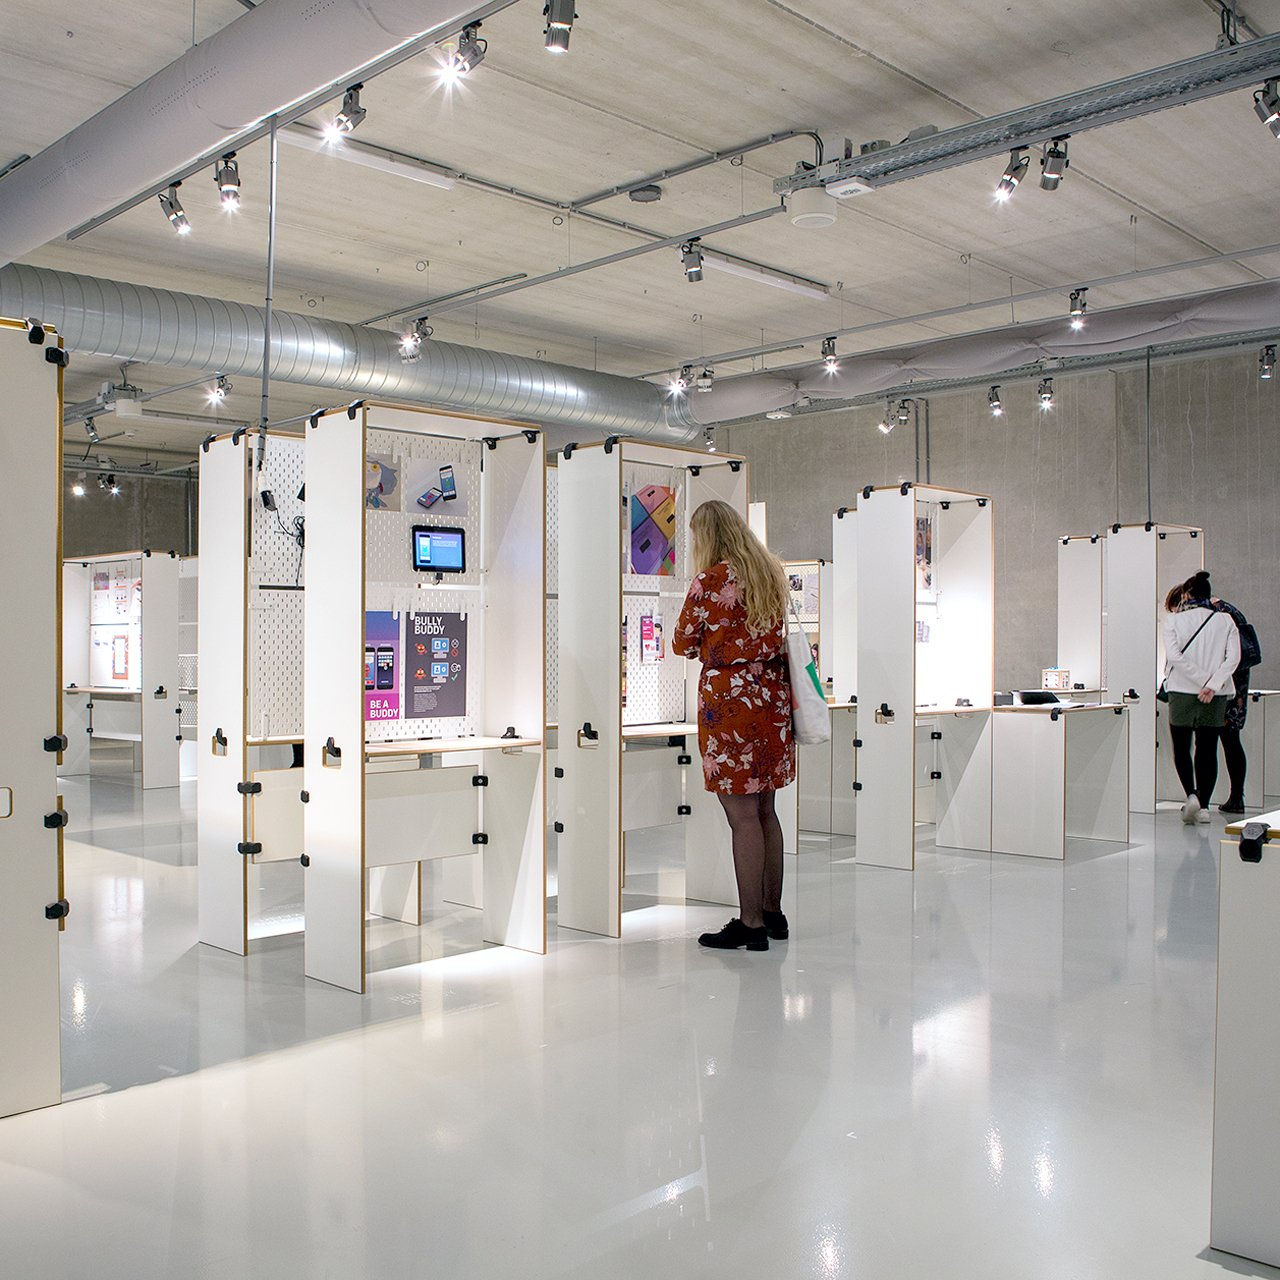 Design the layout for an exhibition